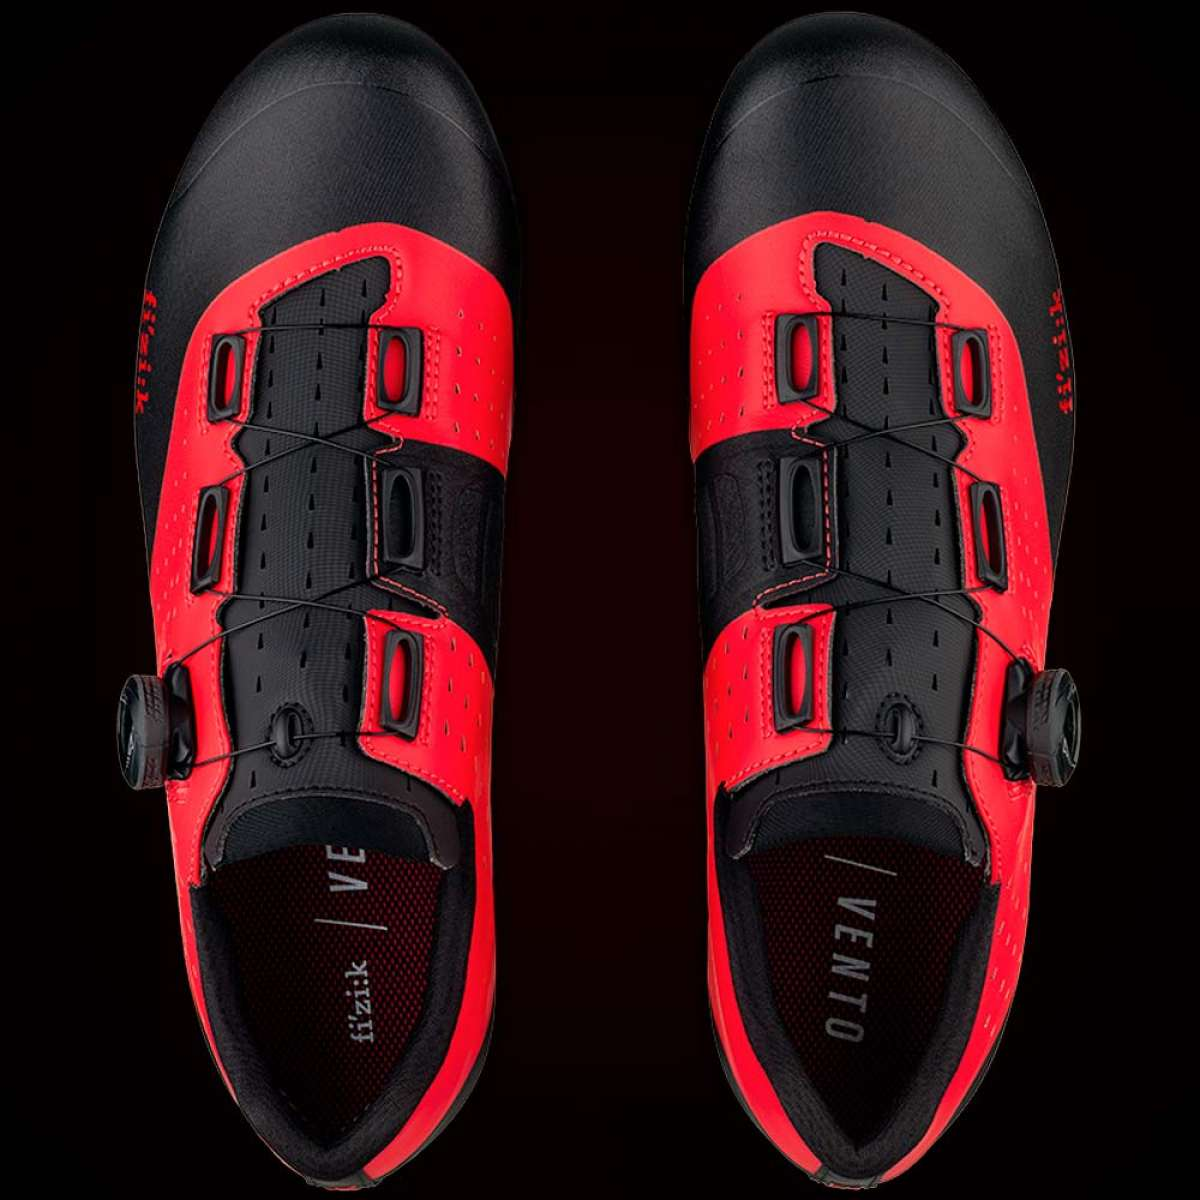 At TodoMountainBike: Fi'zi:k launches Vento Overcurve X3, an asymmetrical upper shoe for a perfect fit